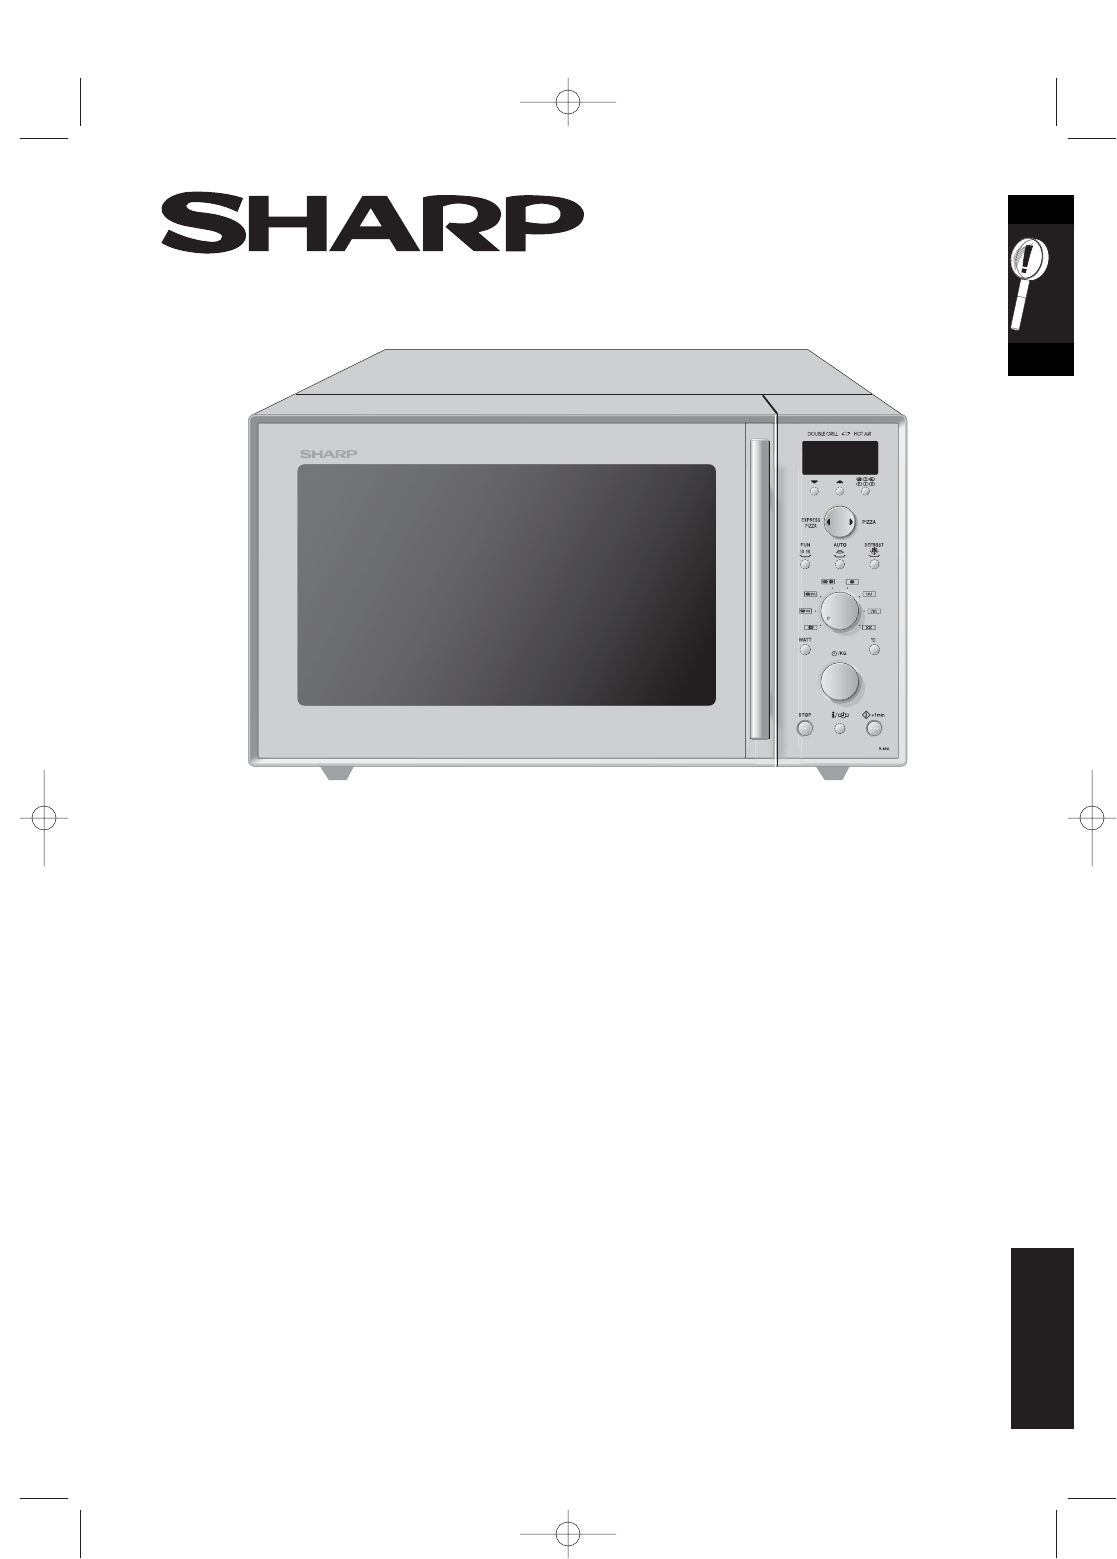 Anel Rodriguez Wikipedia sharp microwave oven r 898 users manual operation gb